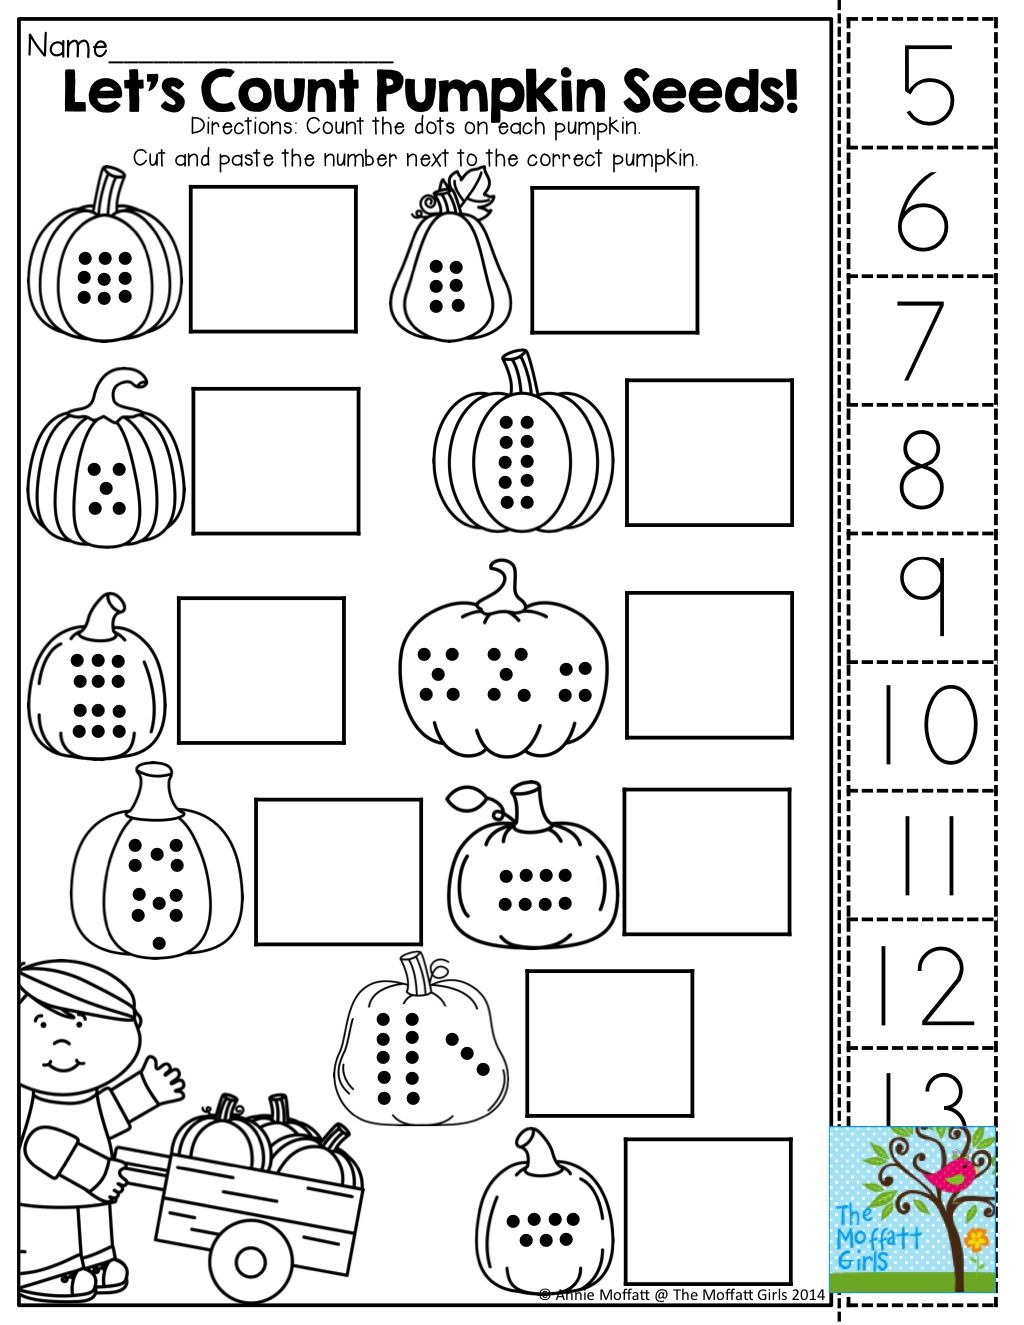 Free Printable Cut And Paste Math Worksheets